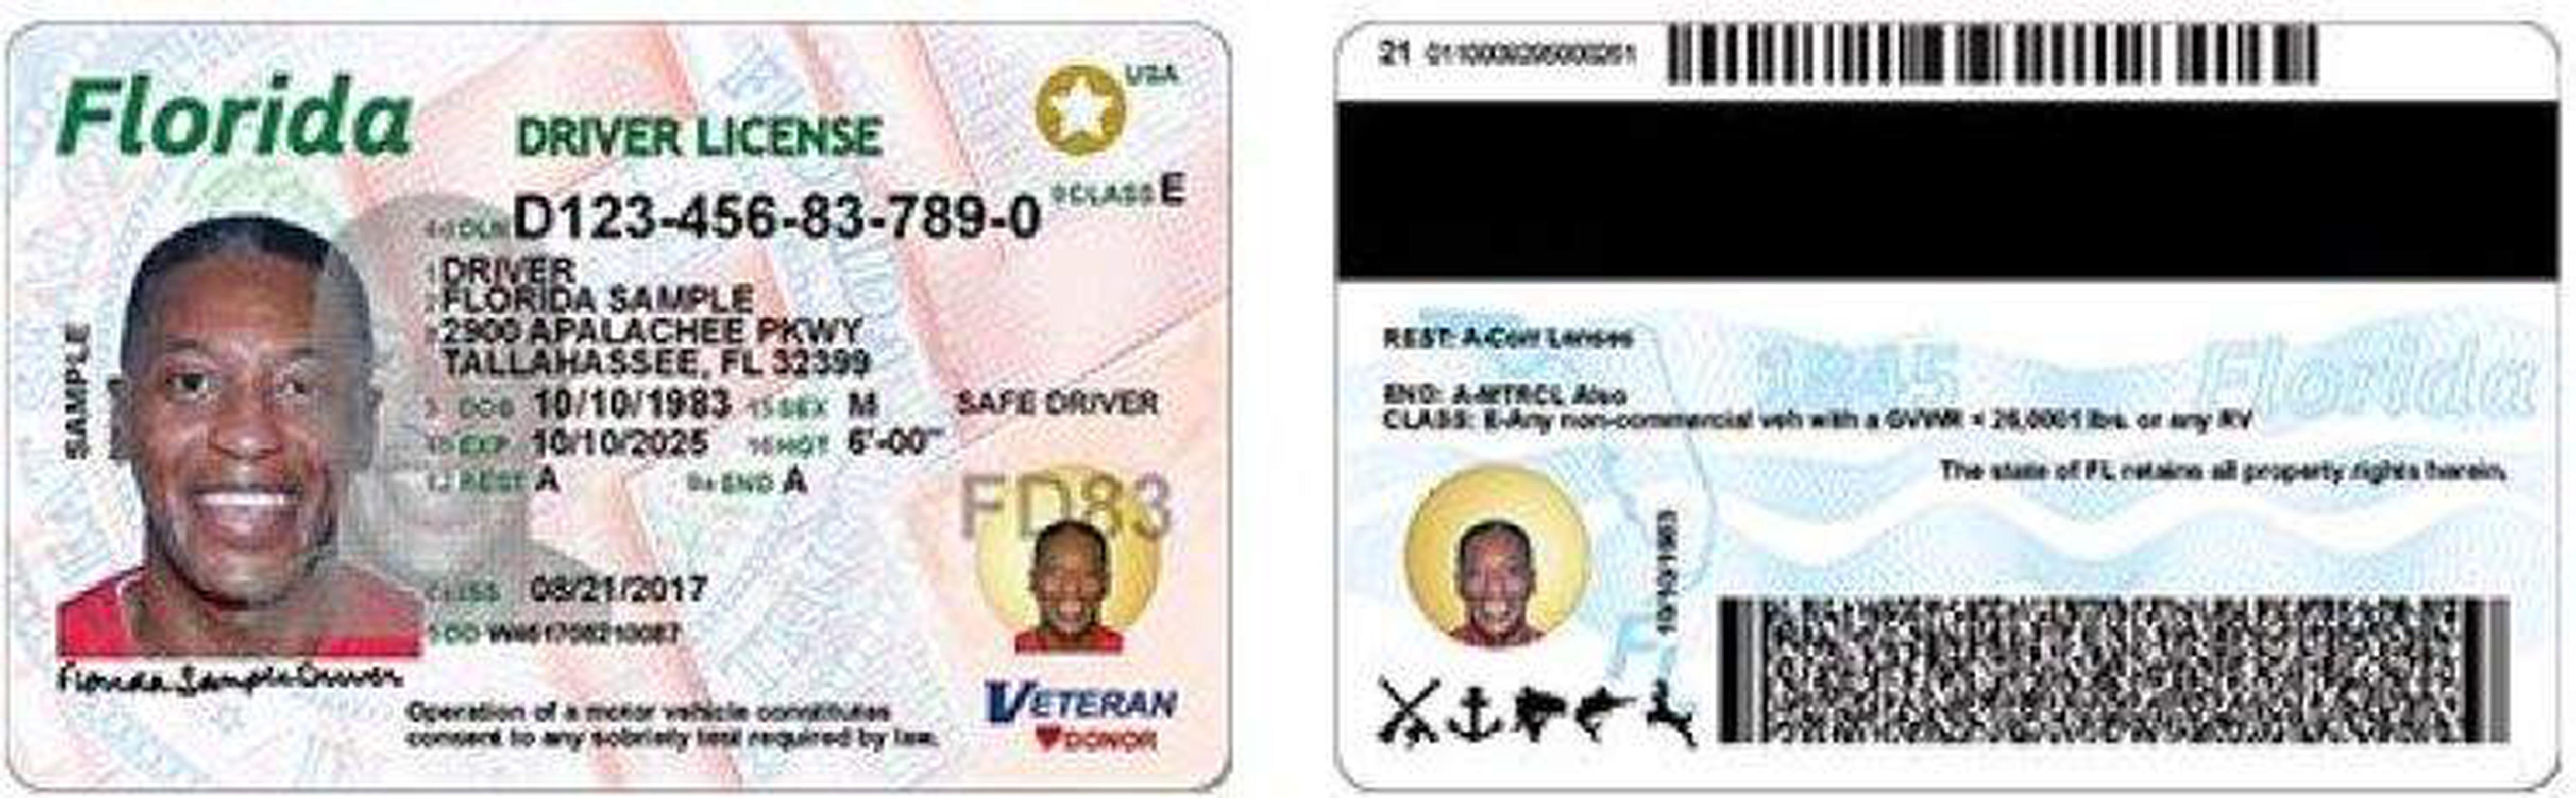 Getting A Florida Drivers License >> New Florida Driver S Licenses And New Security Features